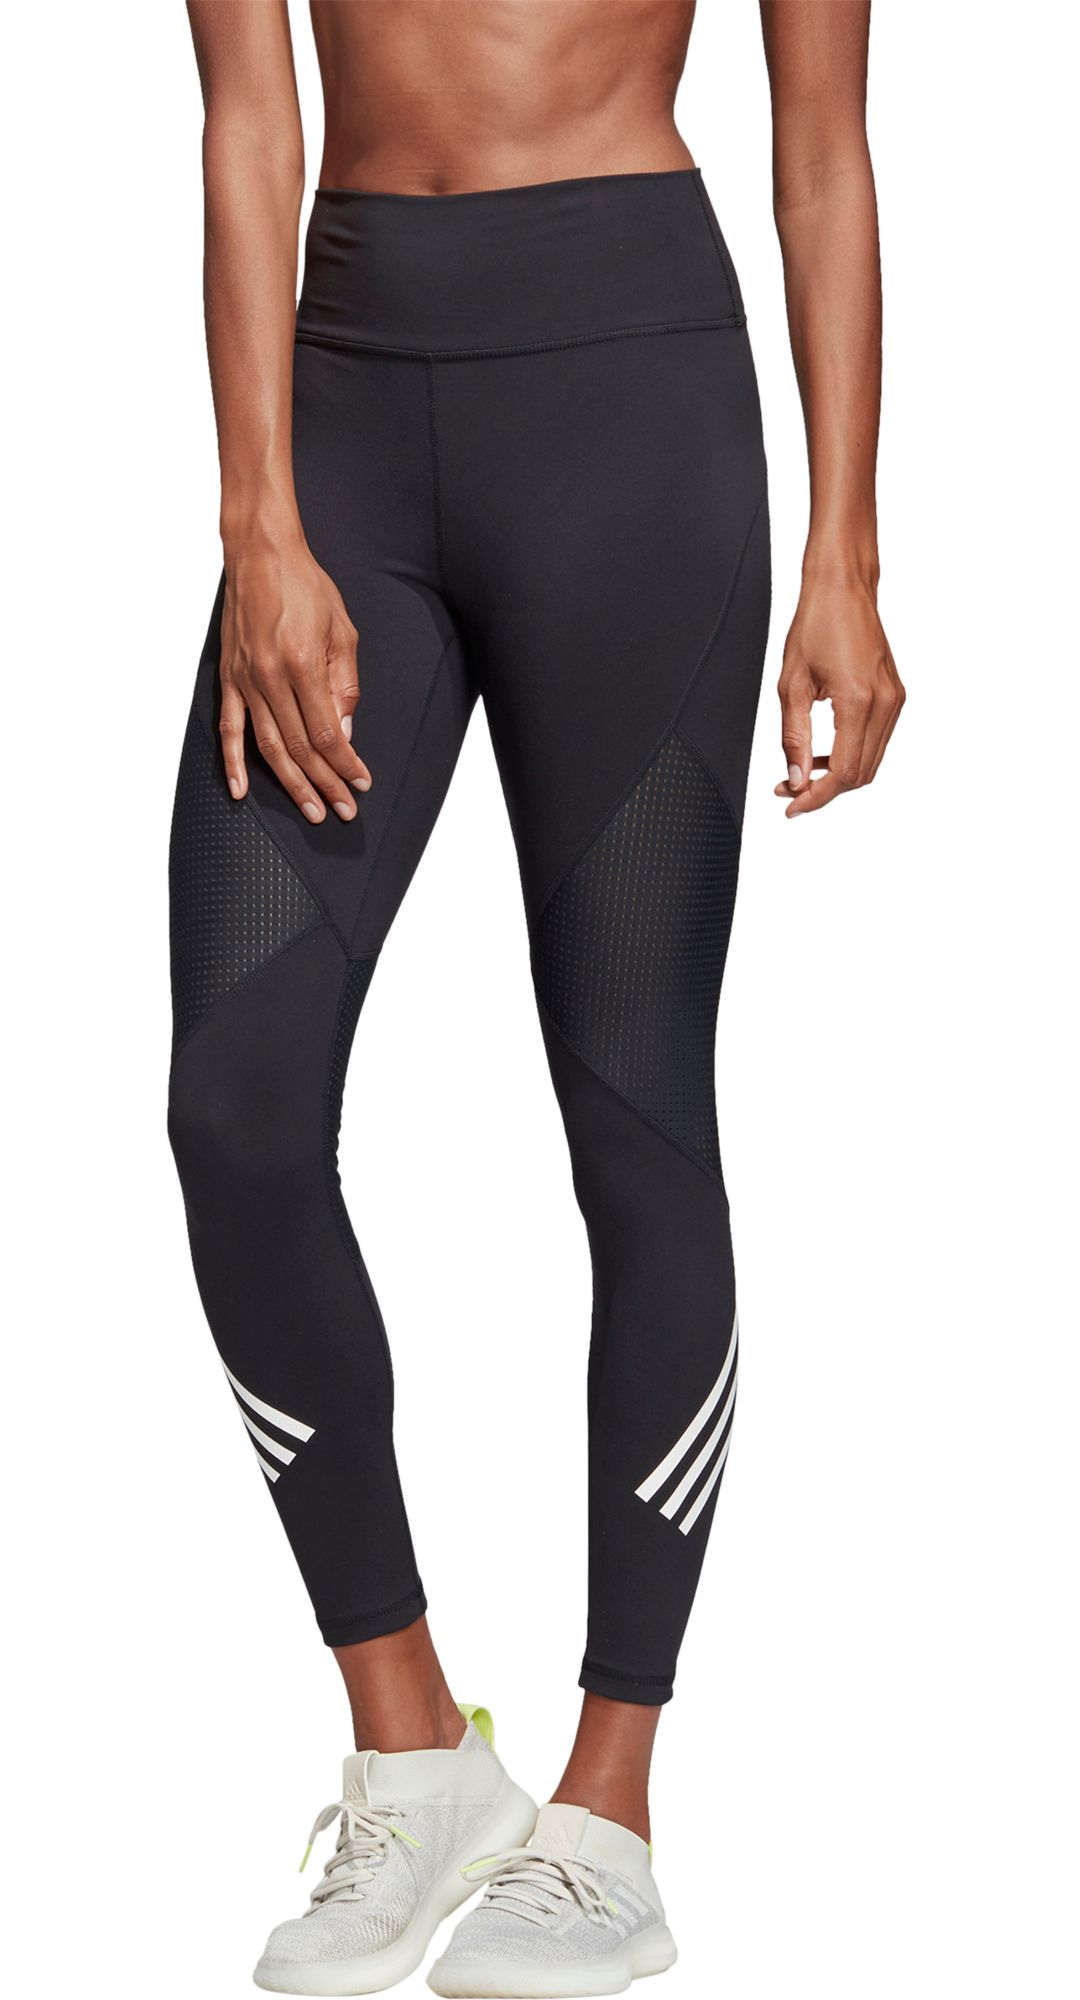 bed2c52cb741a7 adidas Women's Believe This High-Rise 7/8 Length Tights. noImageFound.  Previous